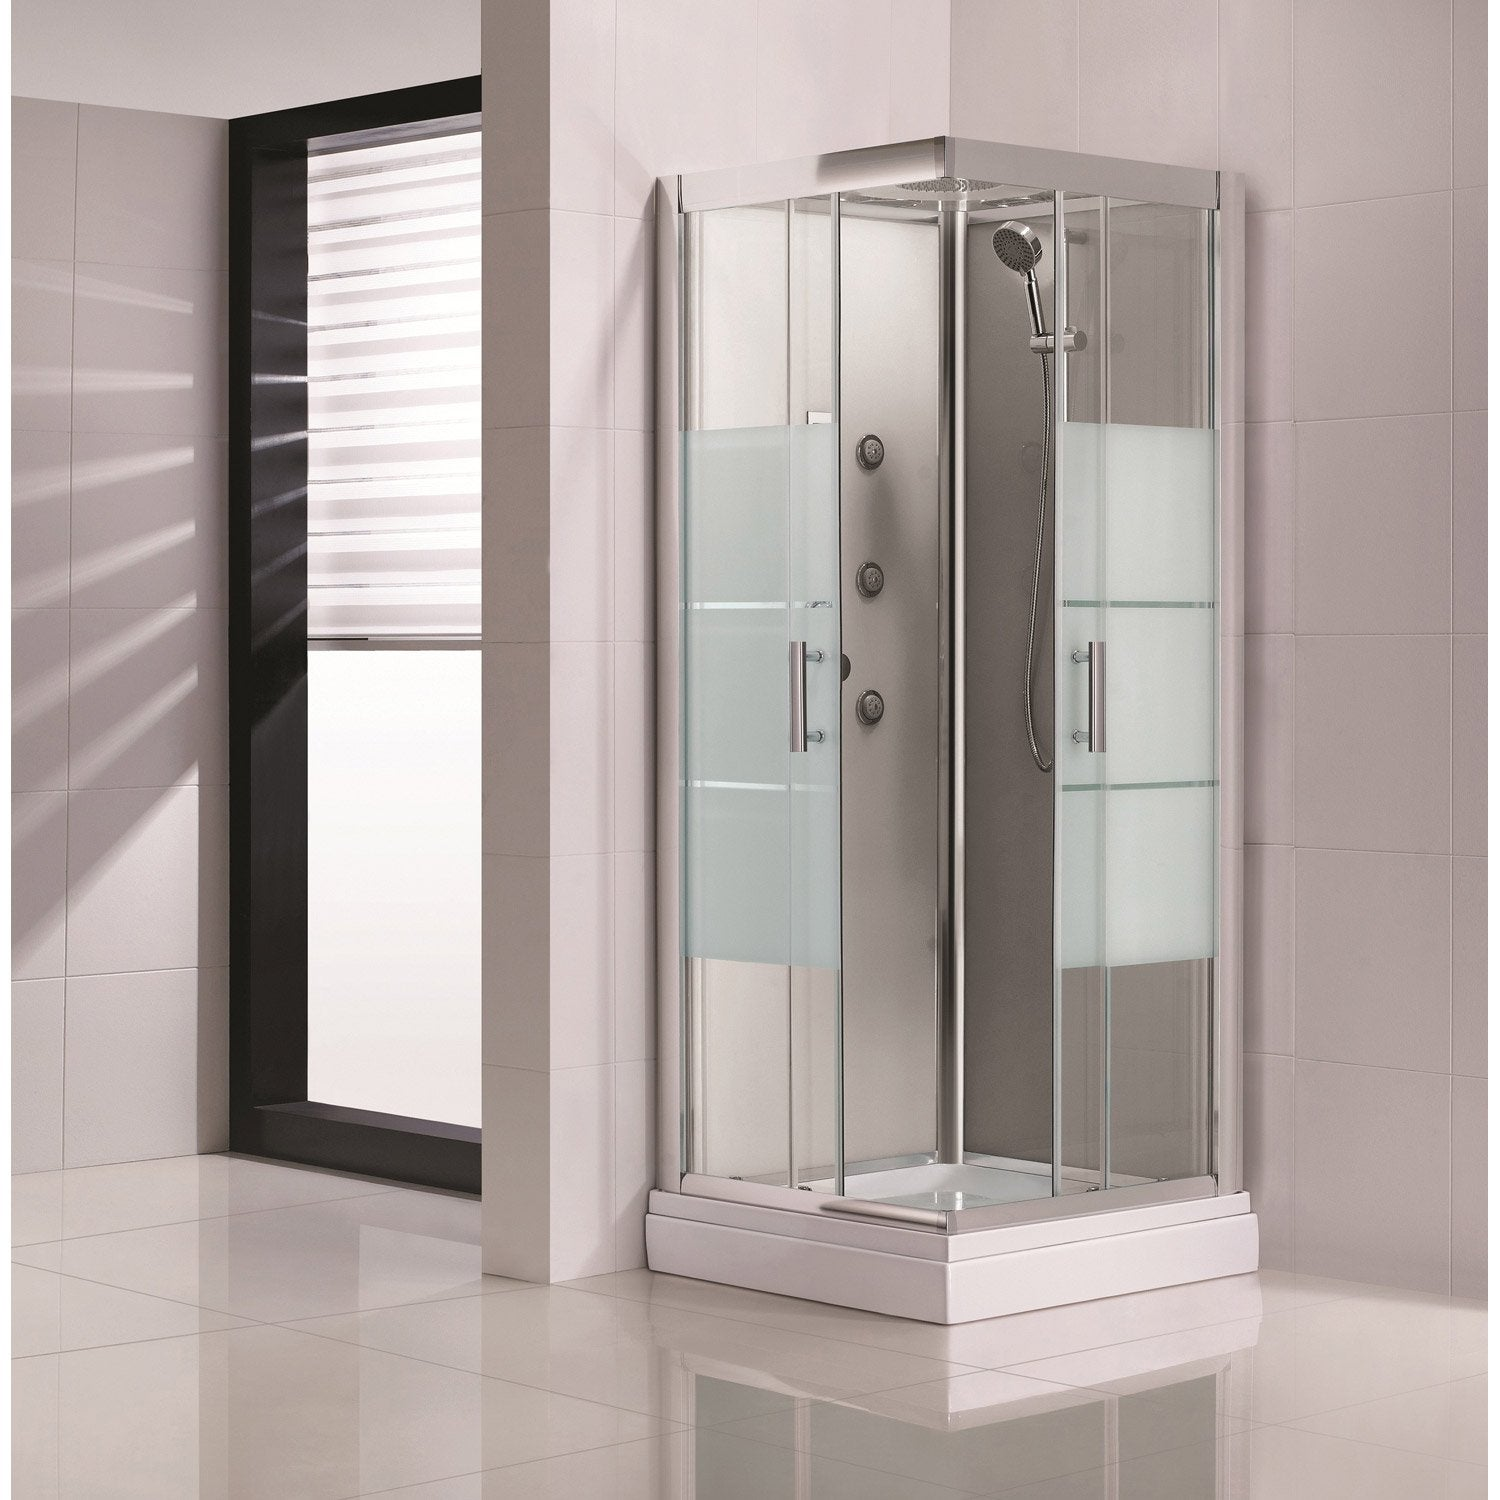 Cabine de douche carr 90x90 cm optima2 grise leroy merlin for Cabine de douche pour comble